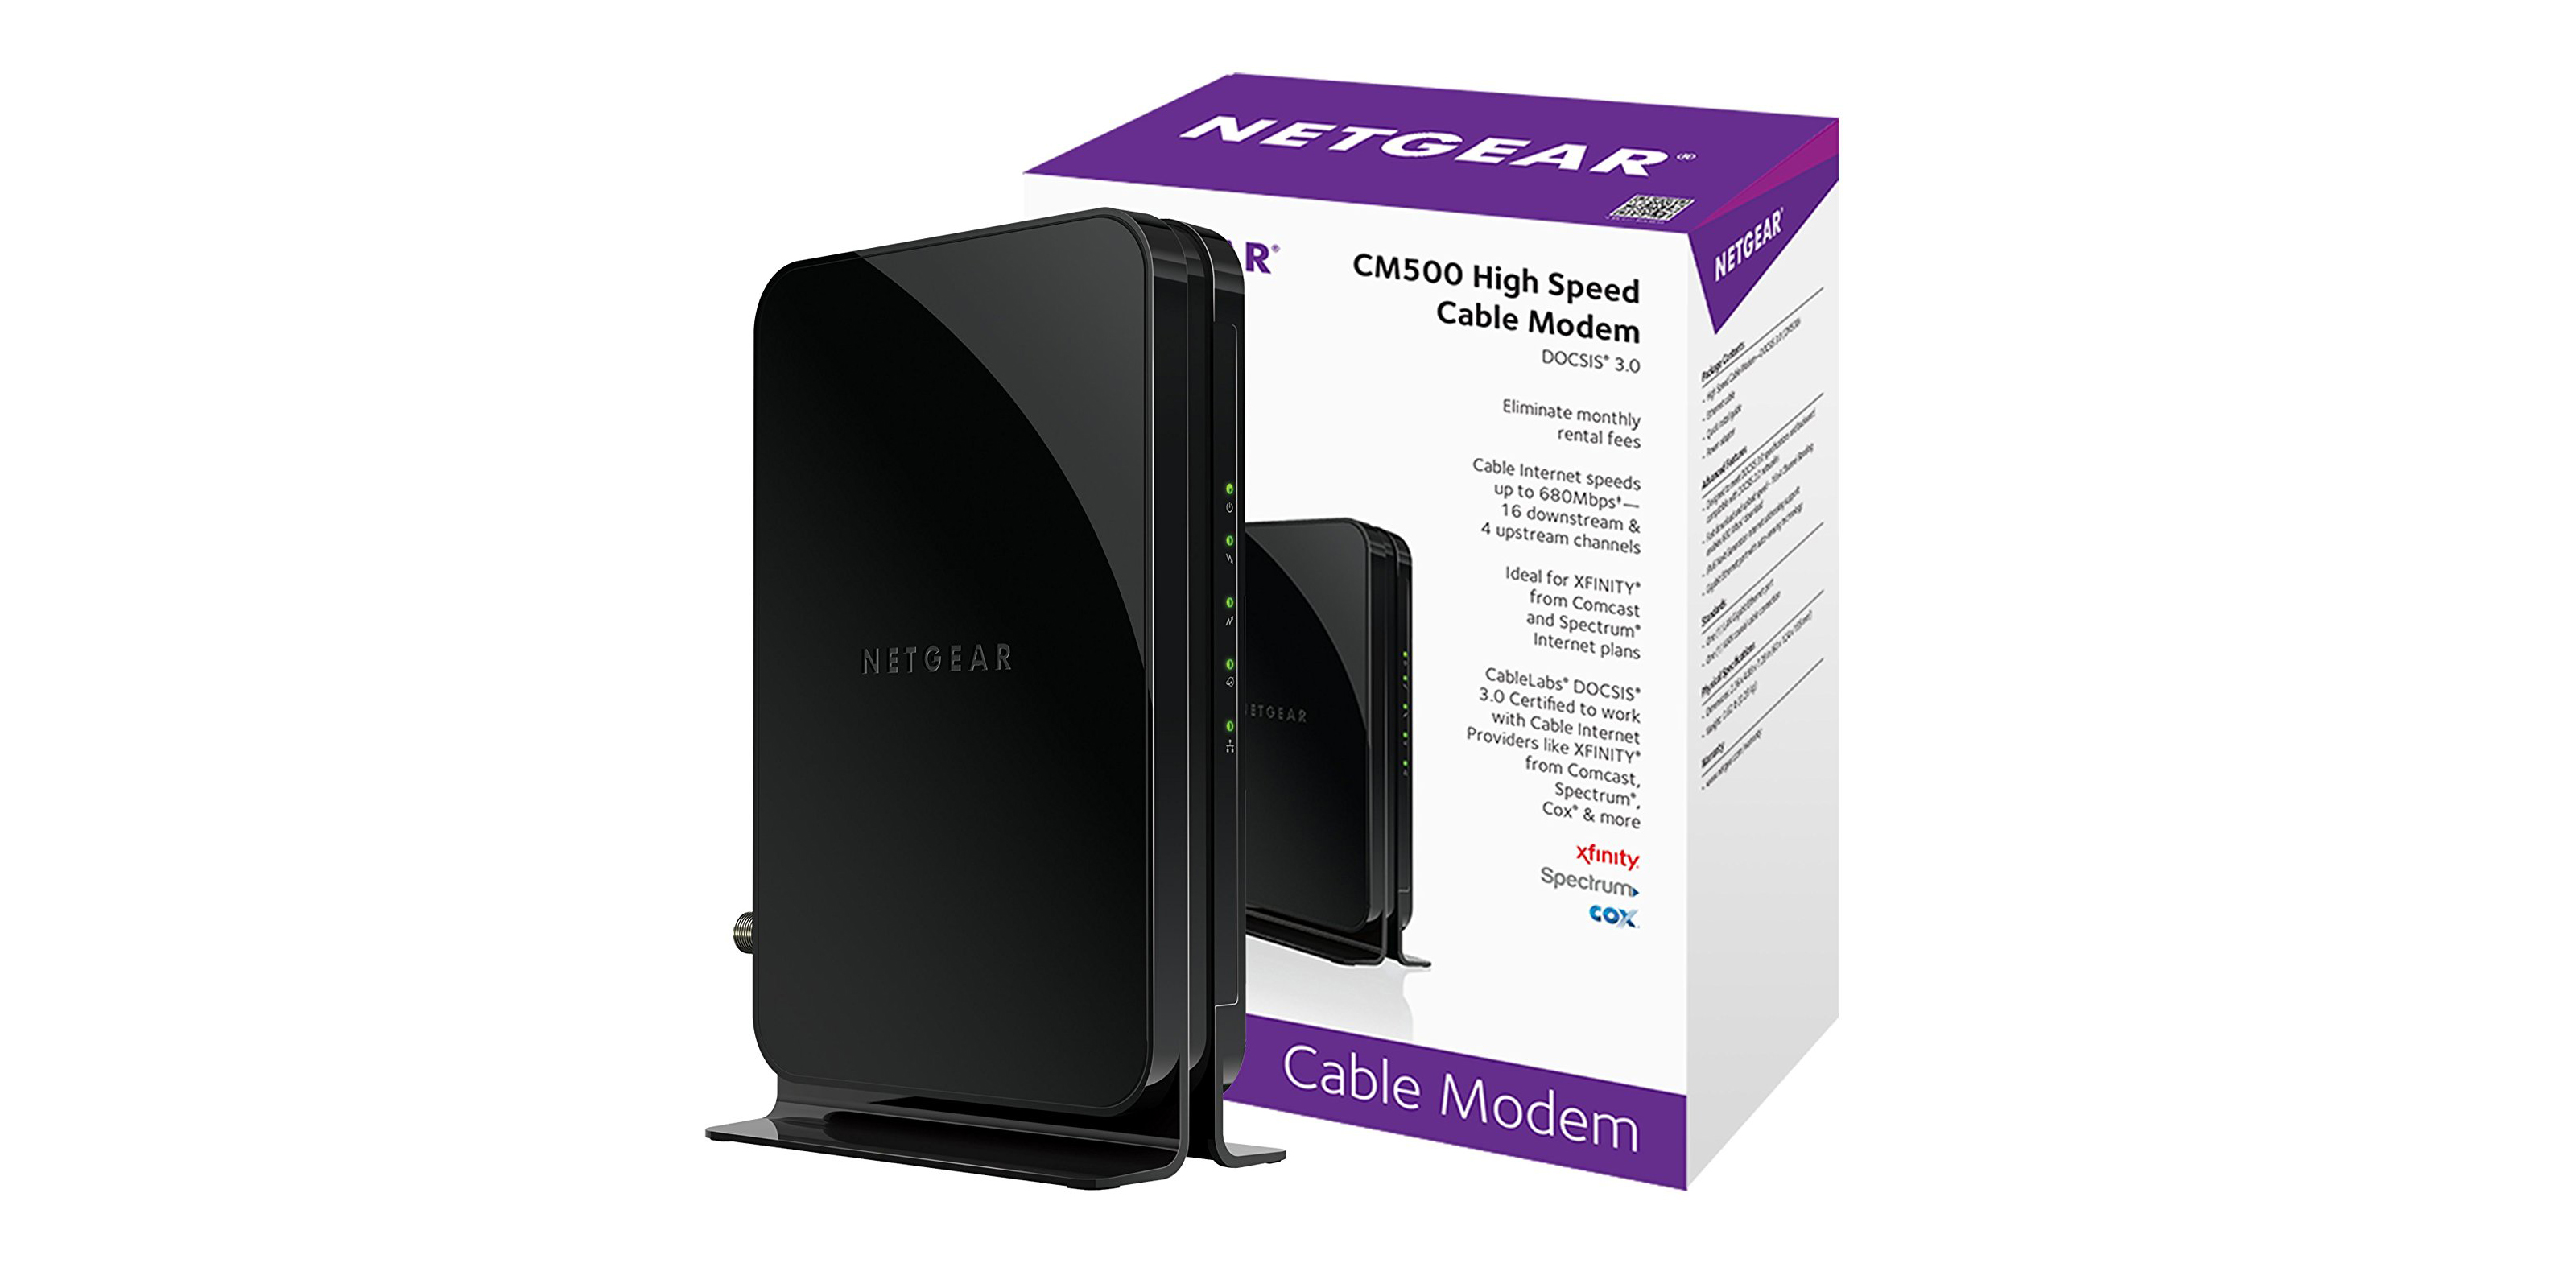 NETGEAR's $45 DOCSIS 3.0 Modem saves you up $120 per year by ditching your ISP's rental